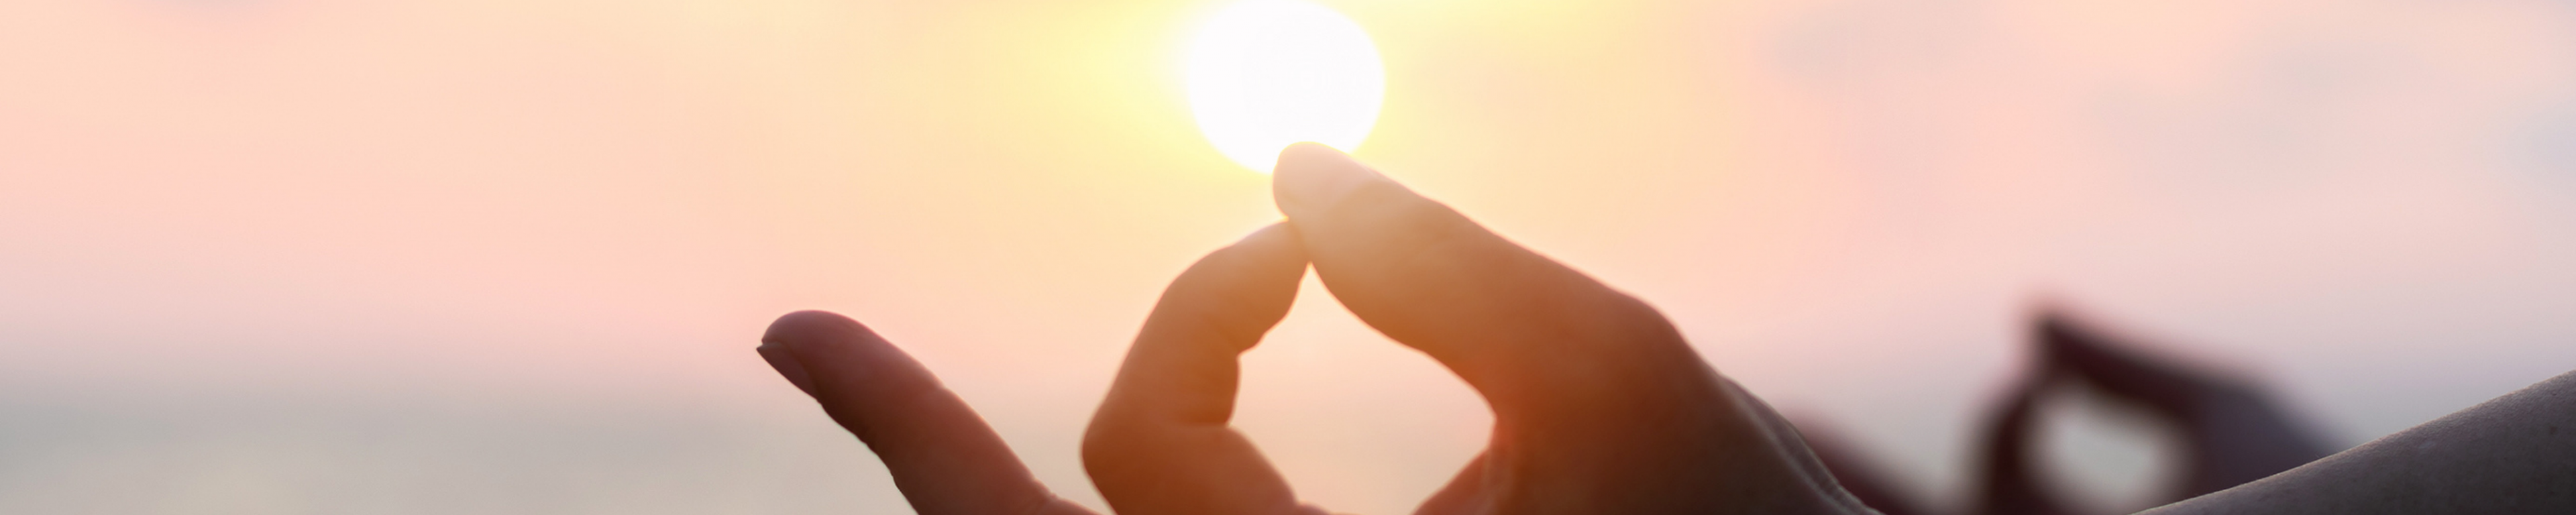 hand in a yoga mudra position resting on a knee in a silhouette against a sunset